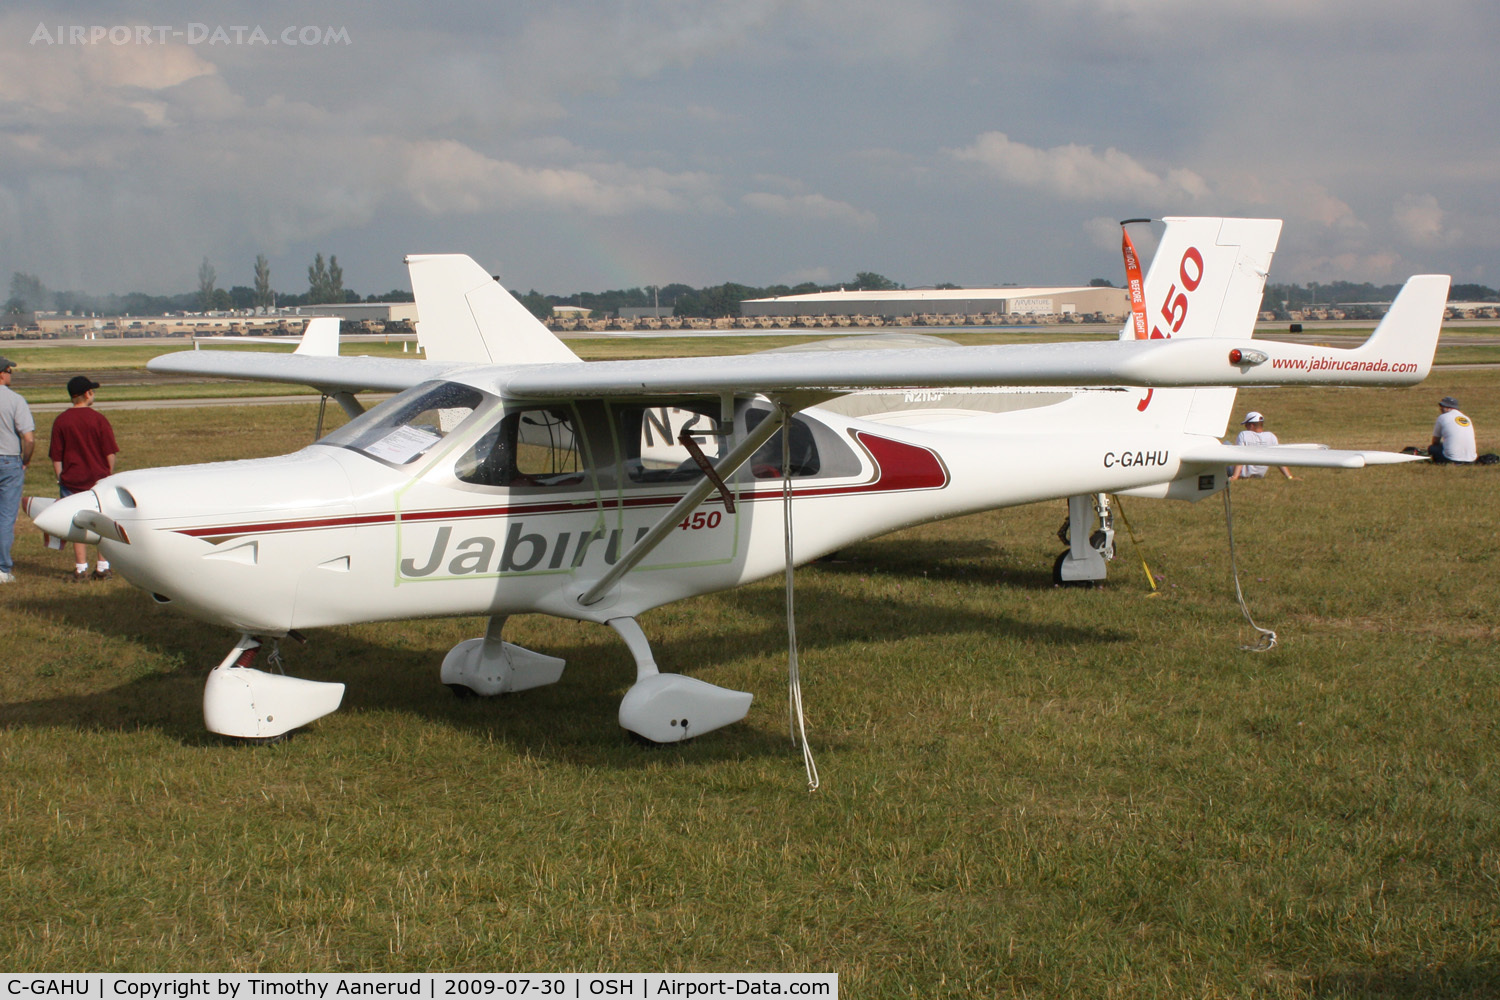 Aircraft C-GAHU (2004 Jabiru J450 C/N 101) Photo by Timothy